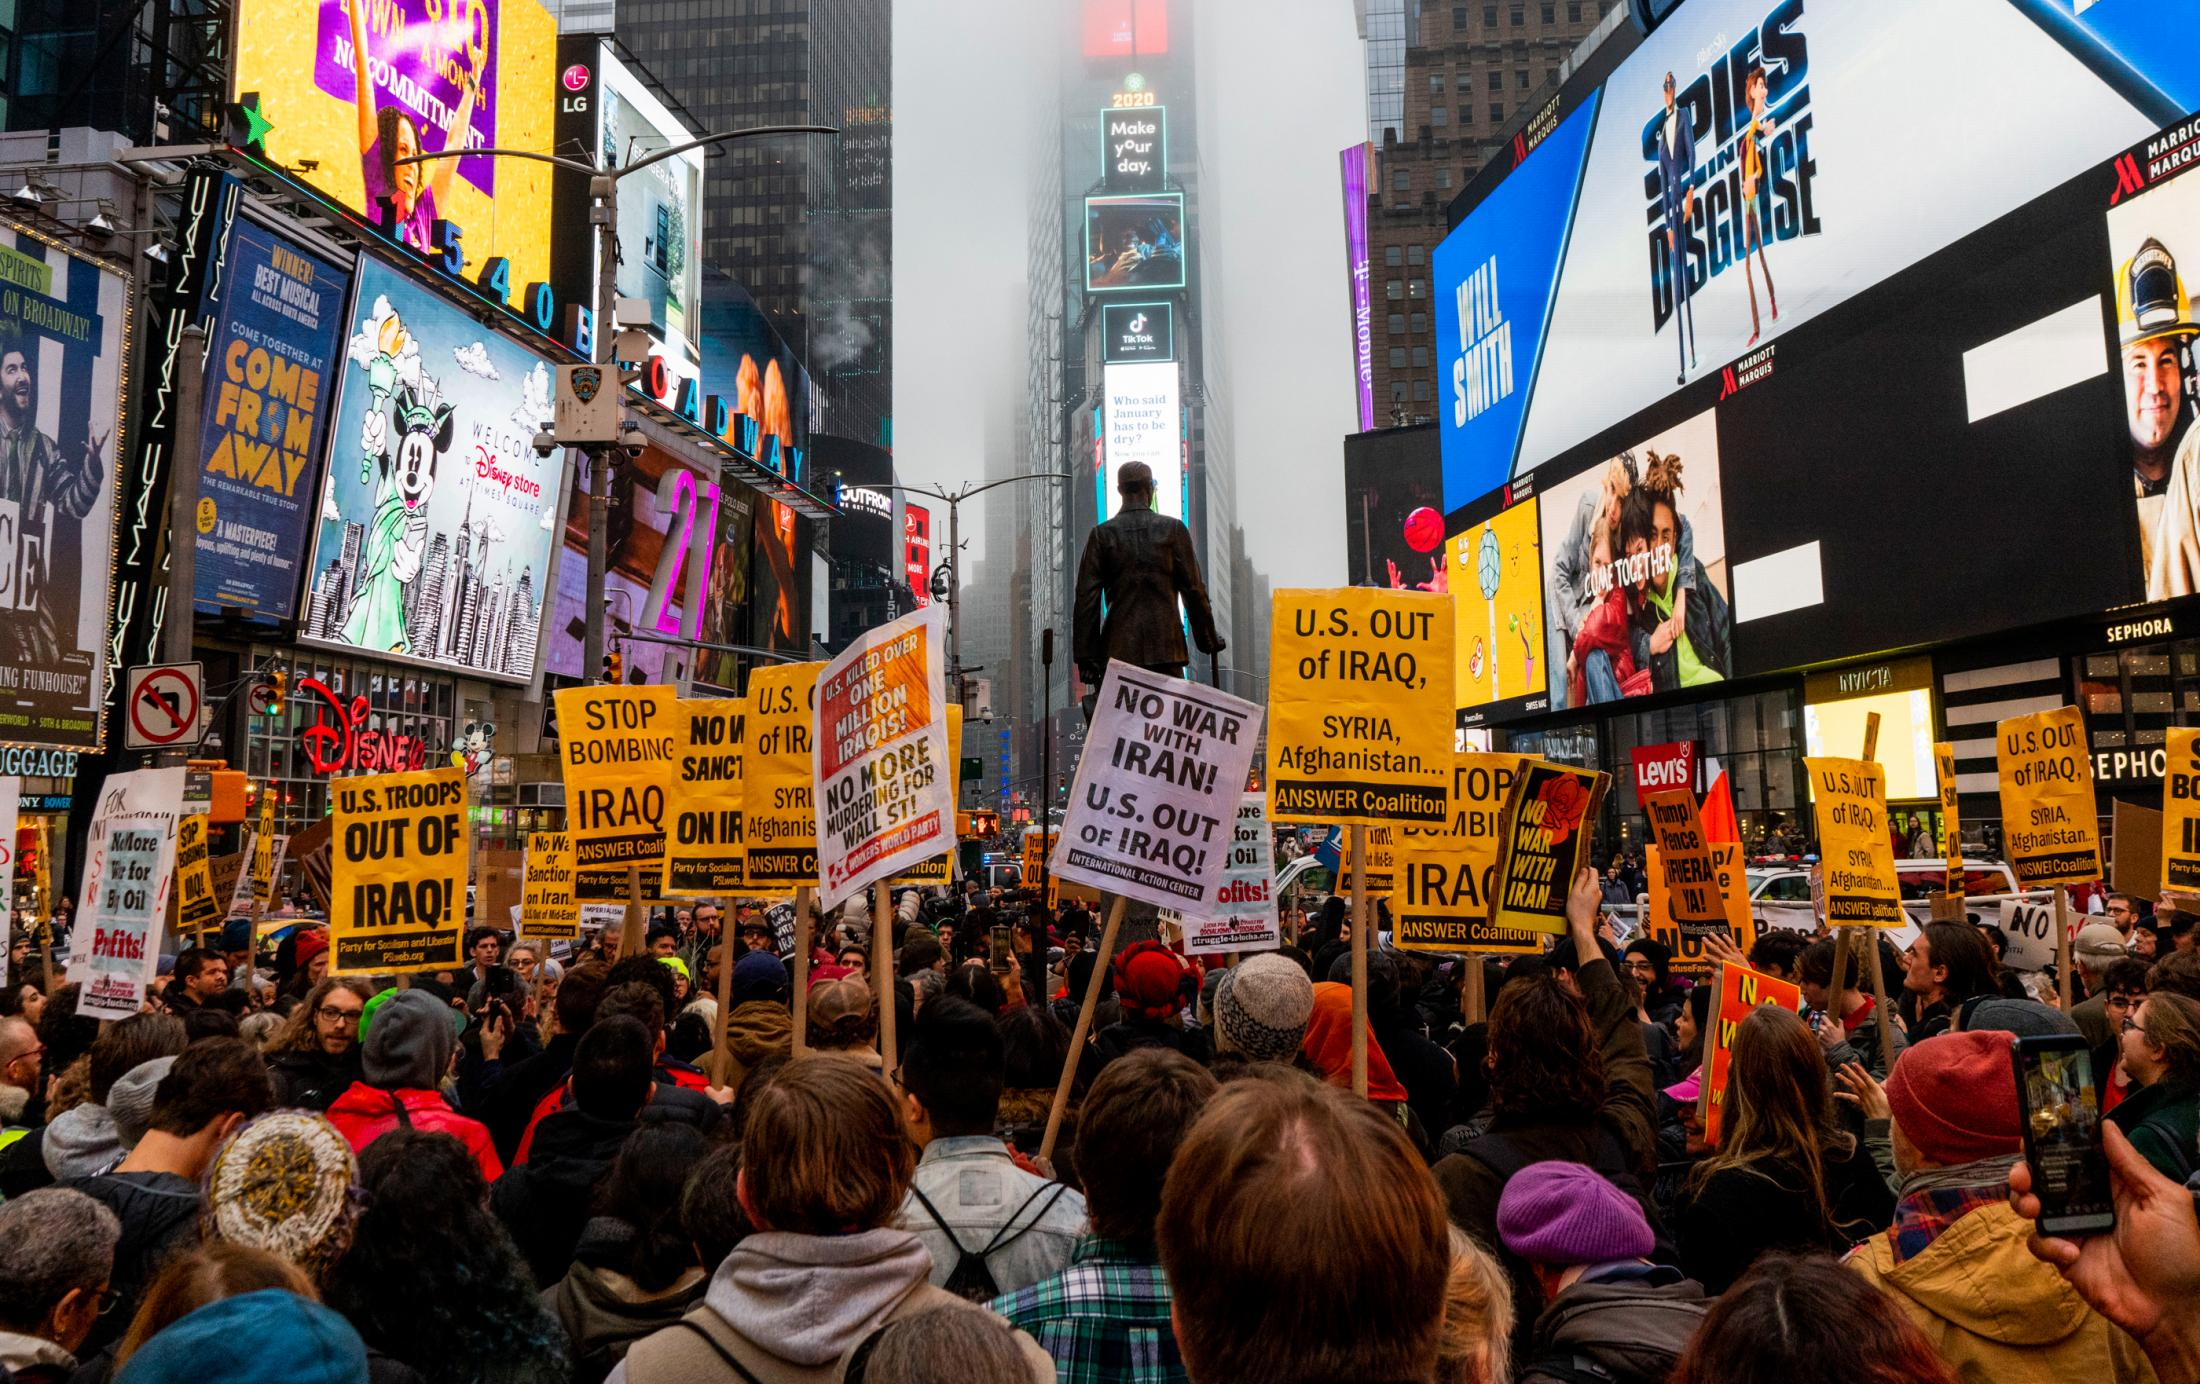 Hundreds of protestors gathered during the anti-war with Iran rally at Times Square in New York, NY. Qassem Soleimani, the head of Iran's military force, was killed early Friday in a U.S. airstrike in Baghdad.